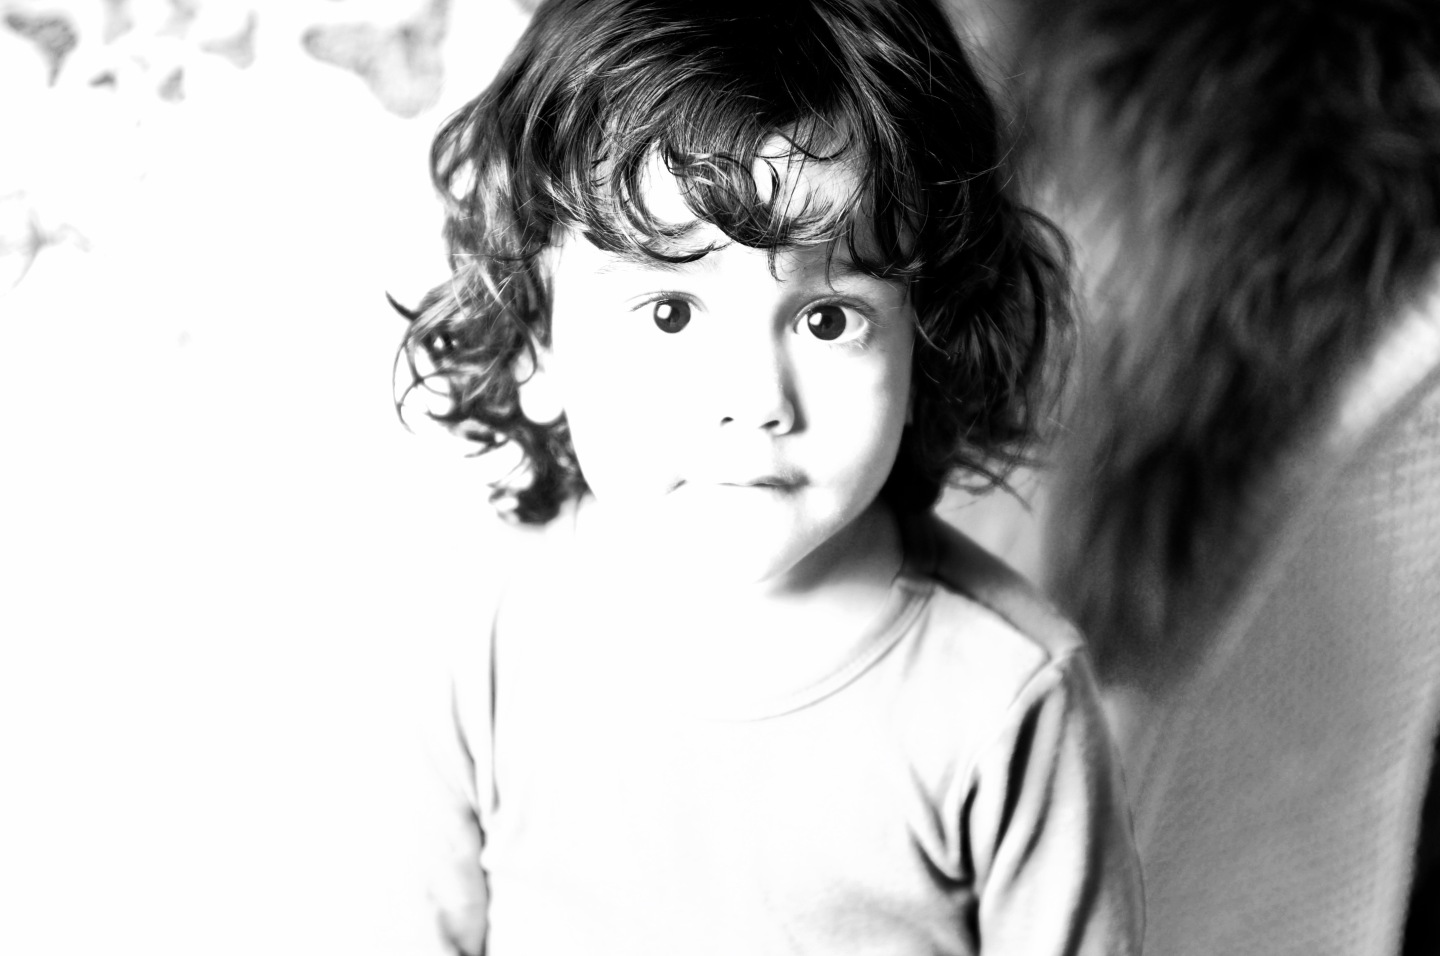 shadows highlights black and white toddler photograph